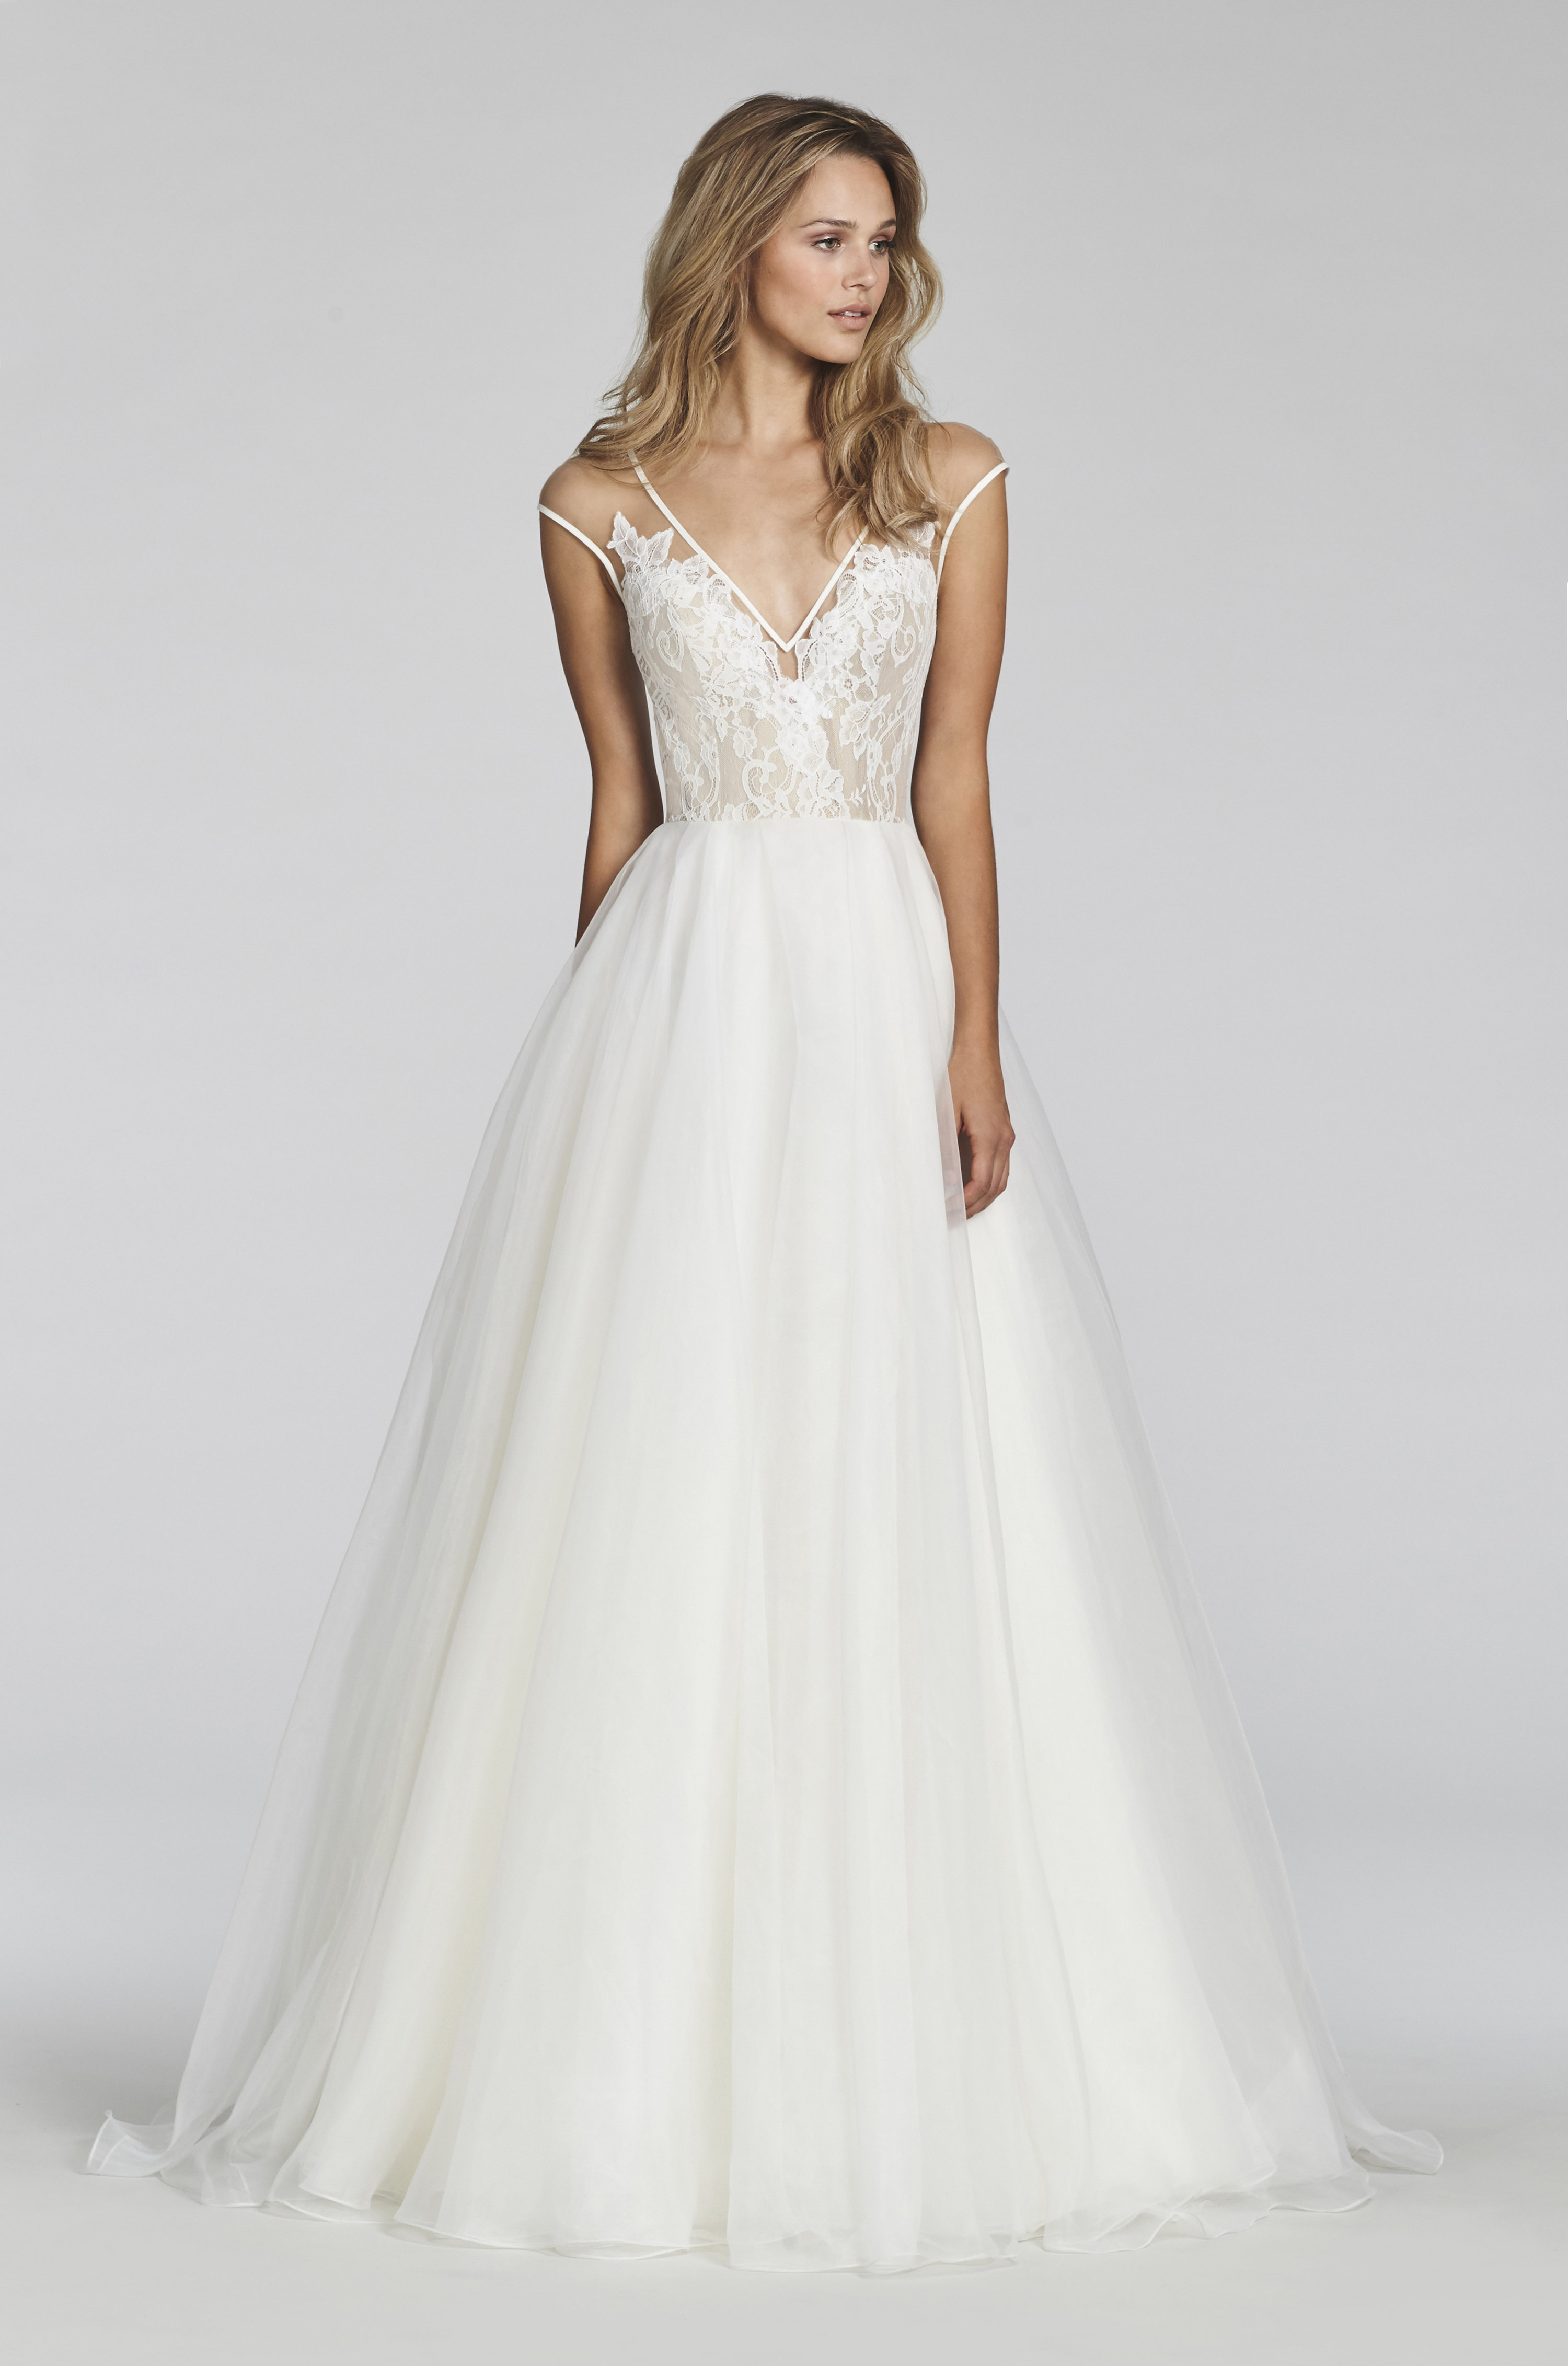 4bd0934d9ecc Bridal Gowns and Wedding Dresses by JLM Couture - Style 1703 Val